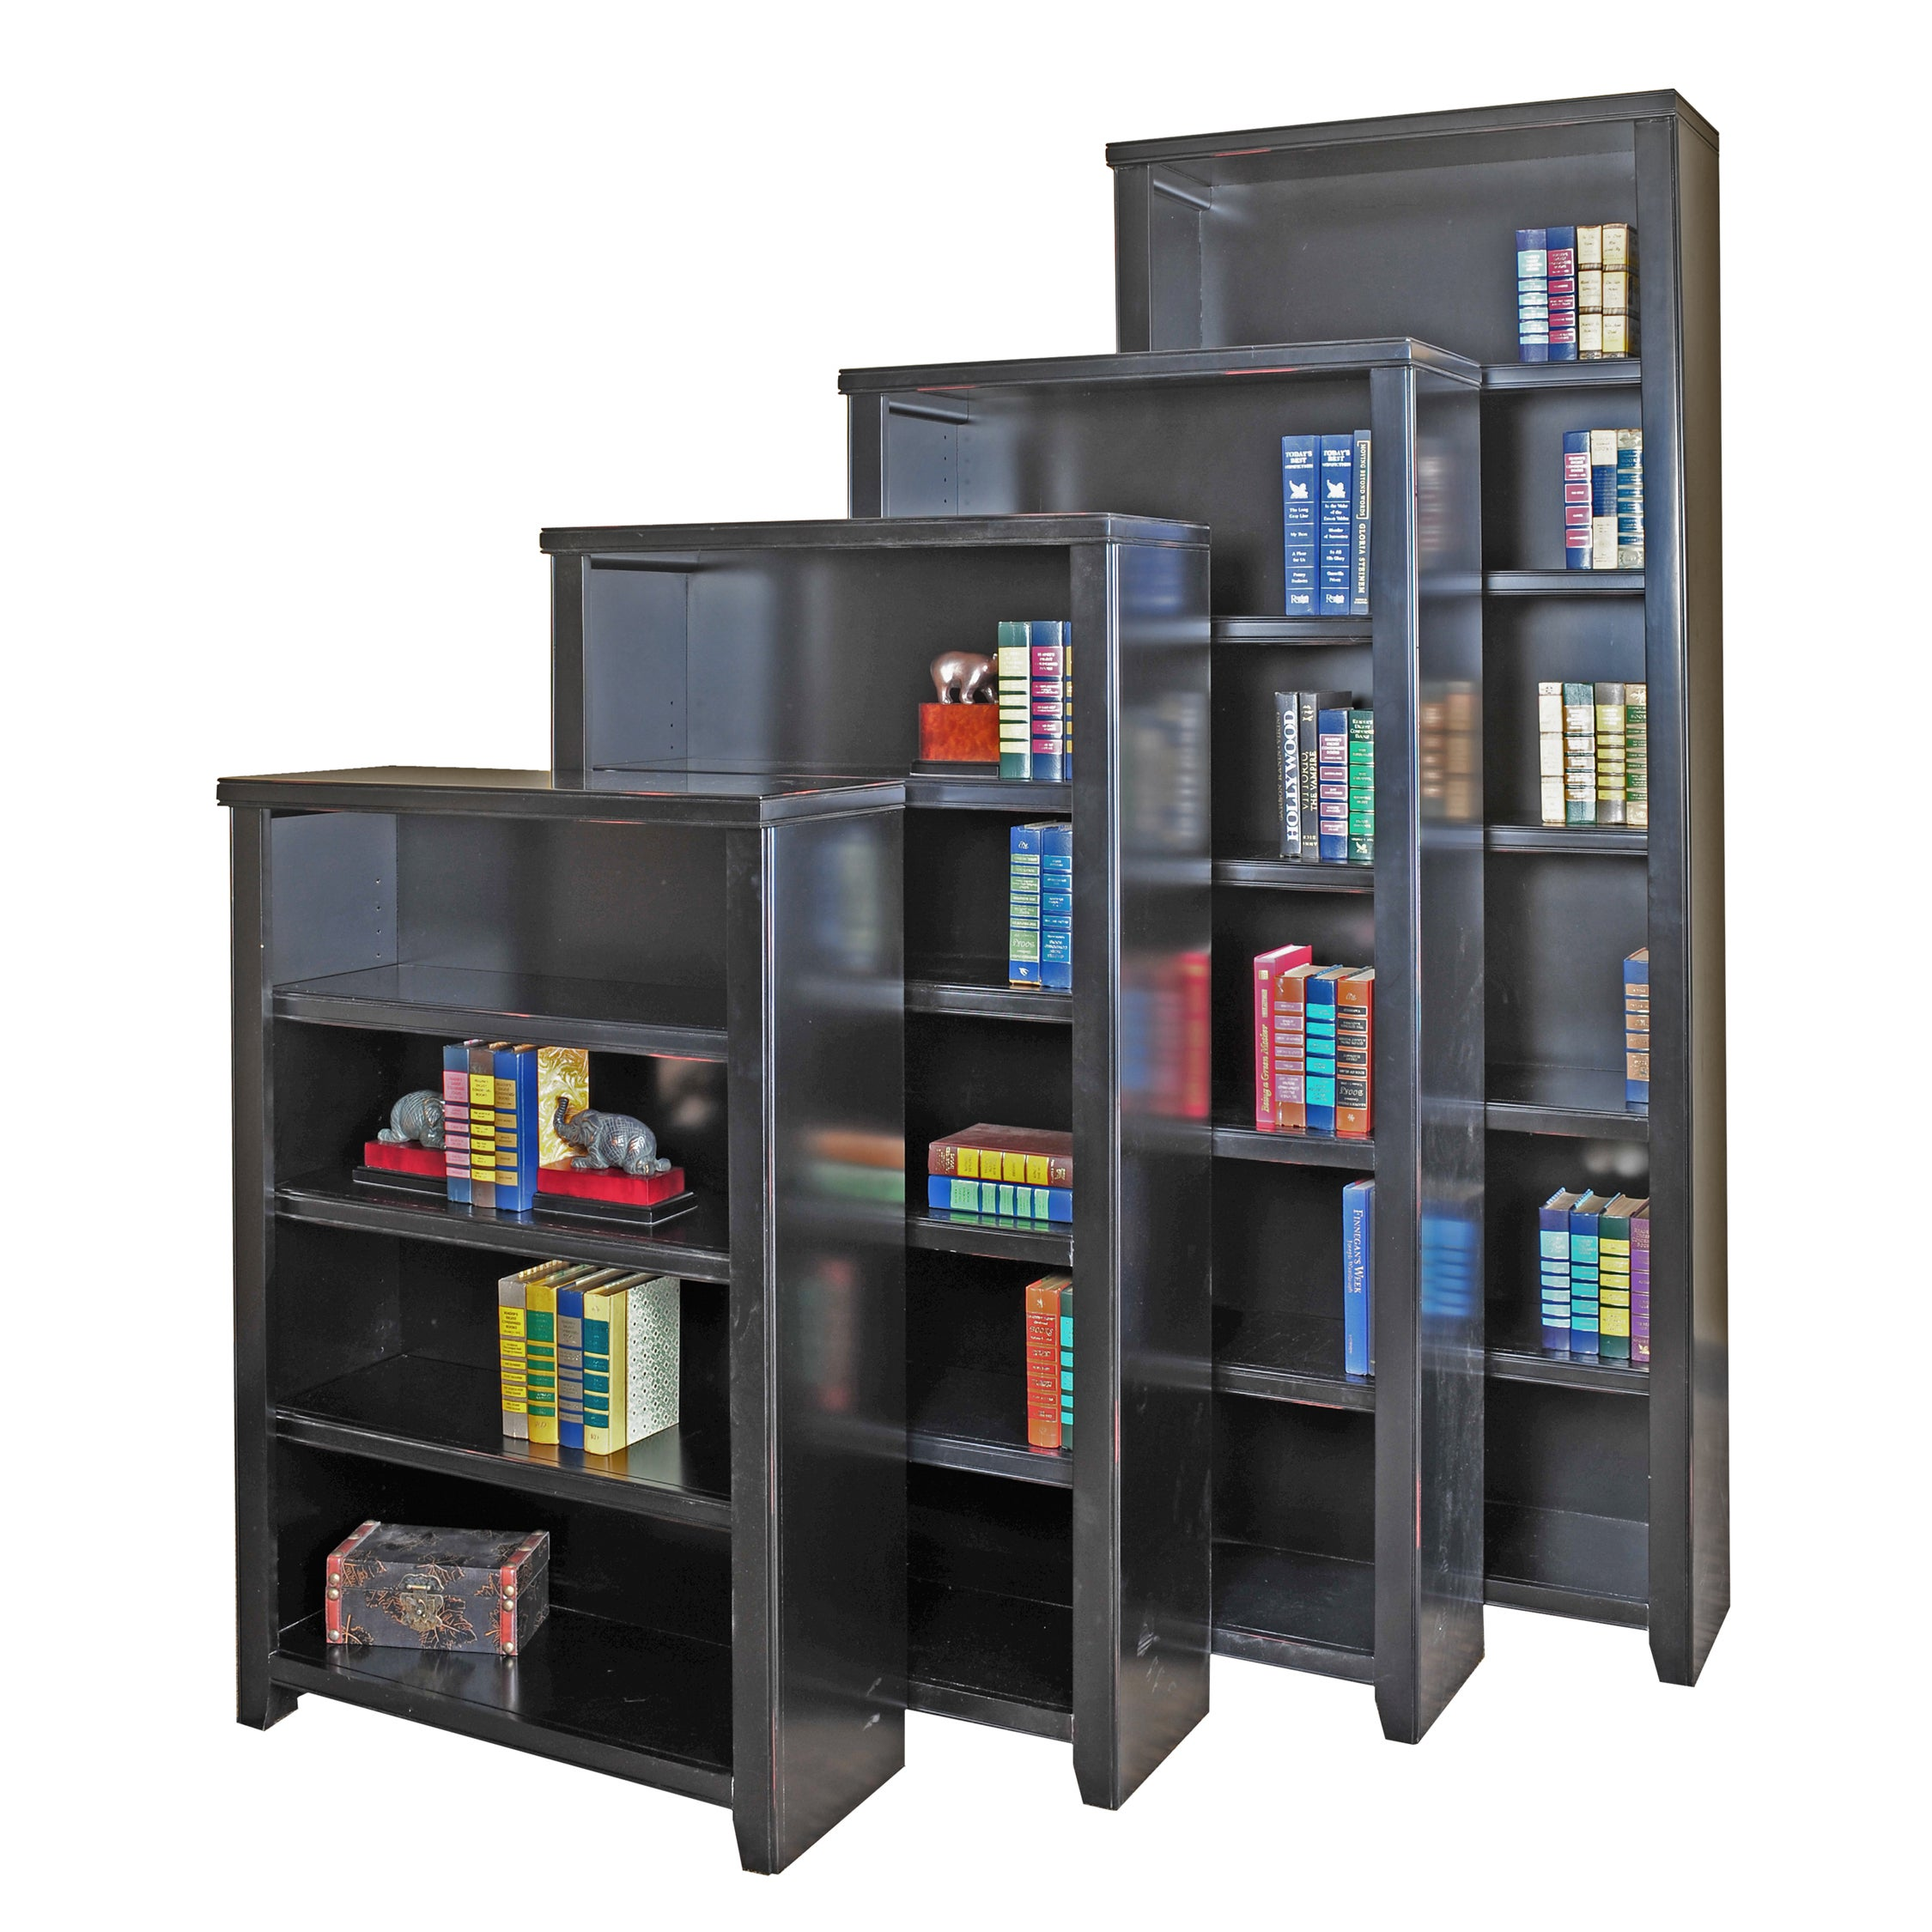 bookshelf 84 inches tall bookcases standing shelves pare